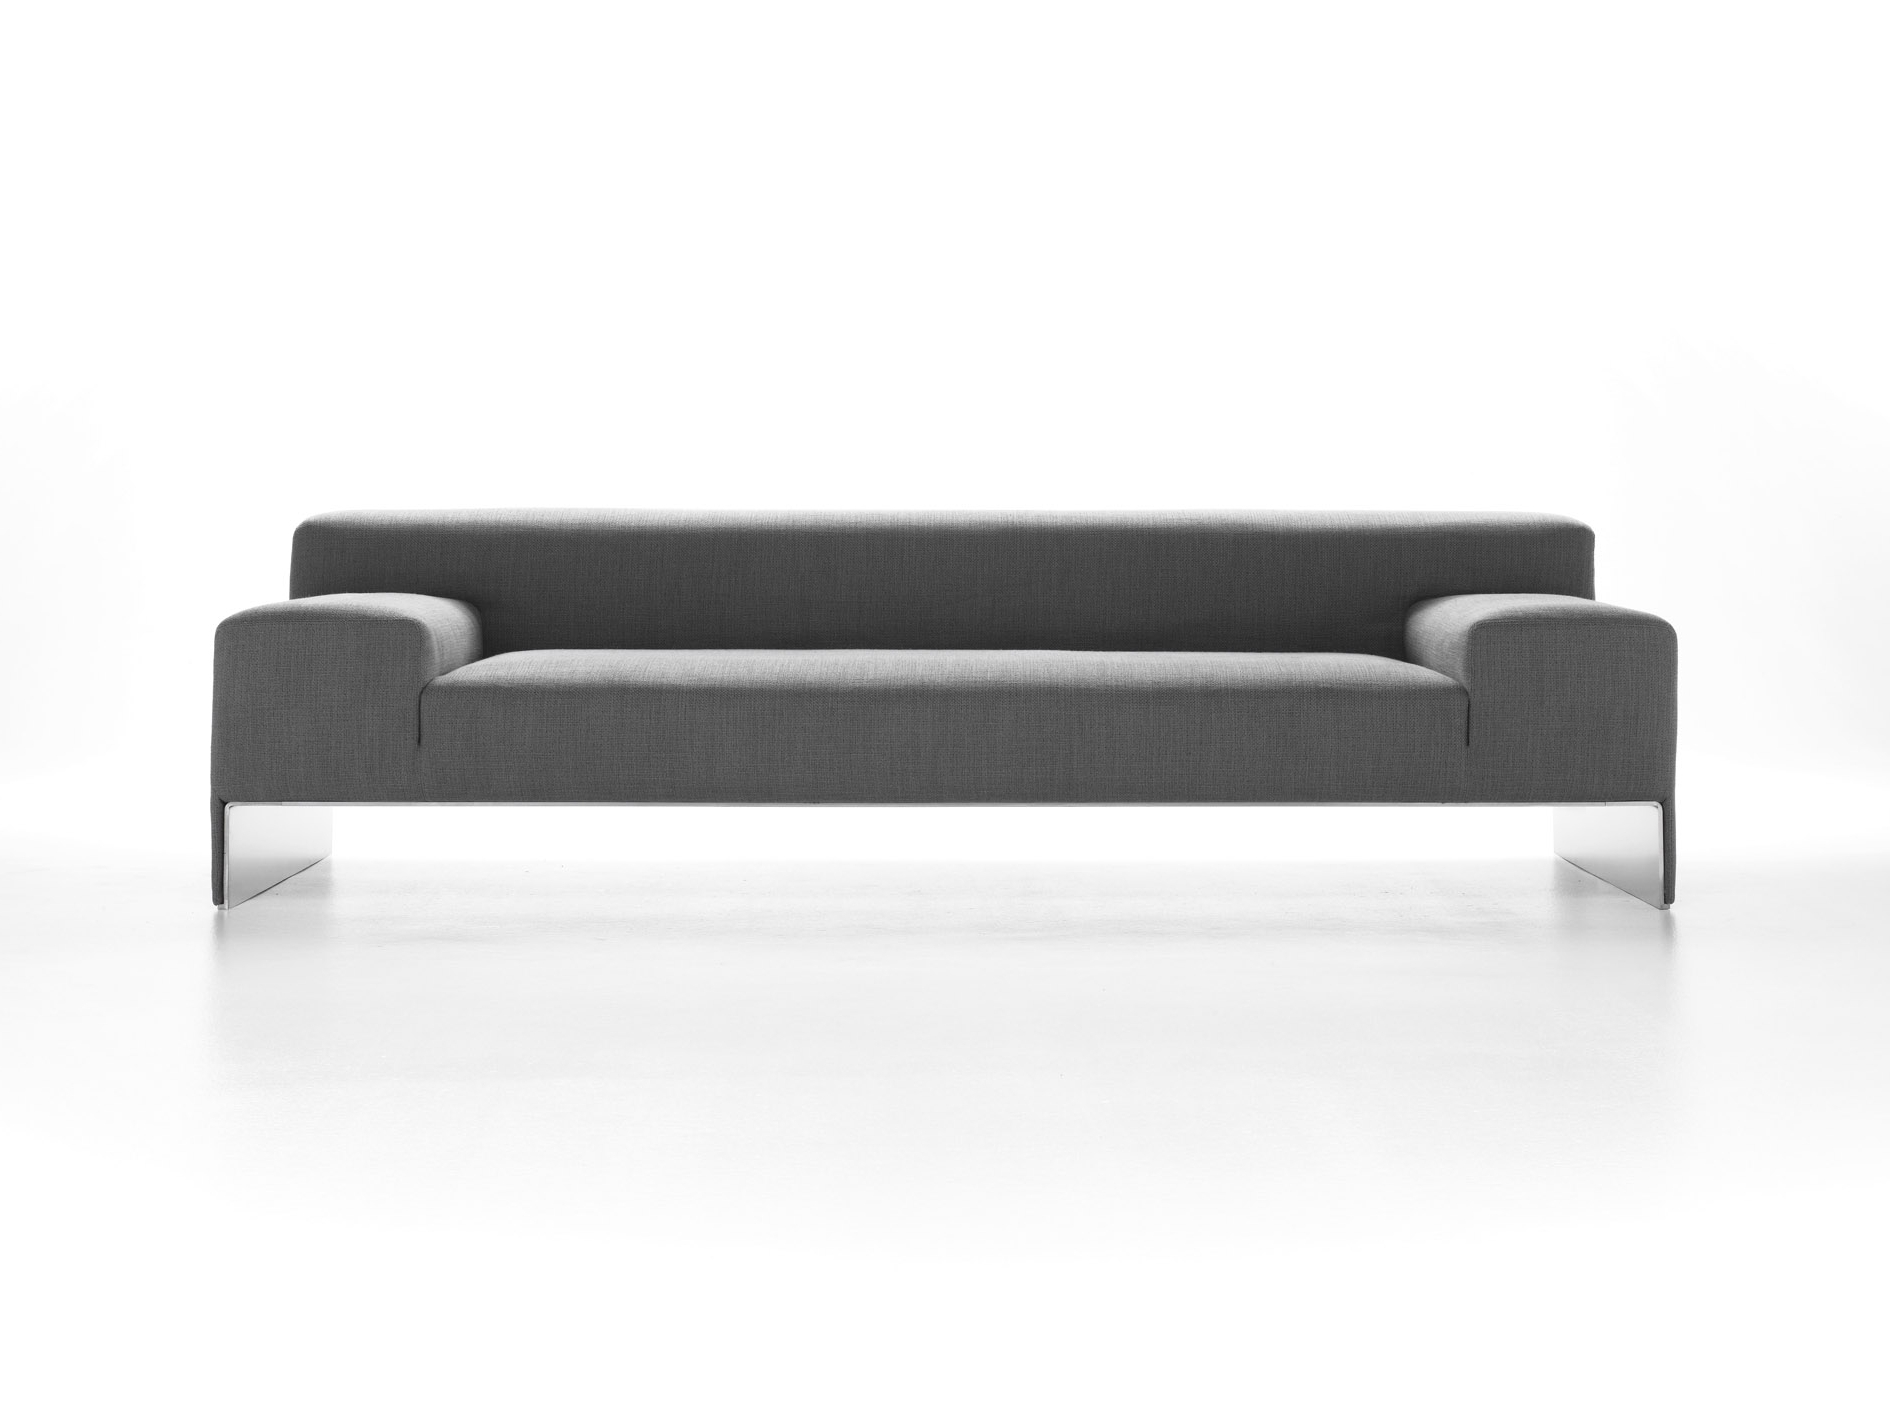 Current Minimalist Black Long Sofa With Wooden Legs And Soft Modern Skin Inside Long Modern Sofas (View 3 of 15)